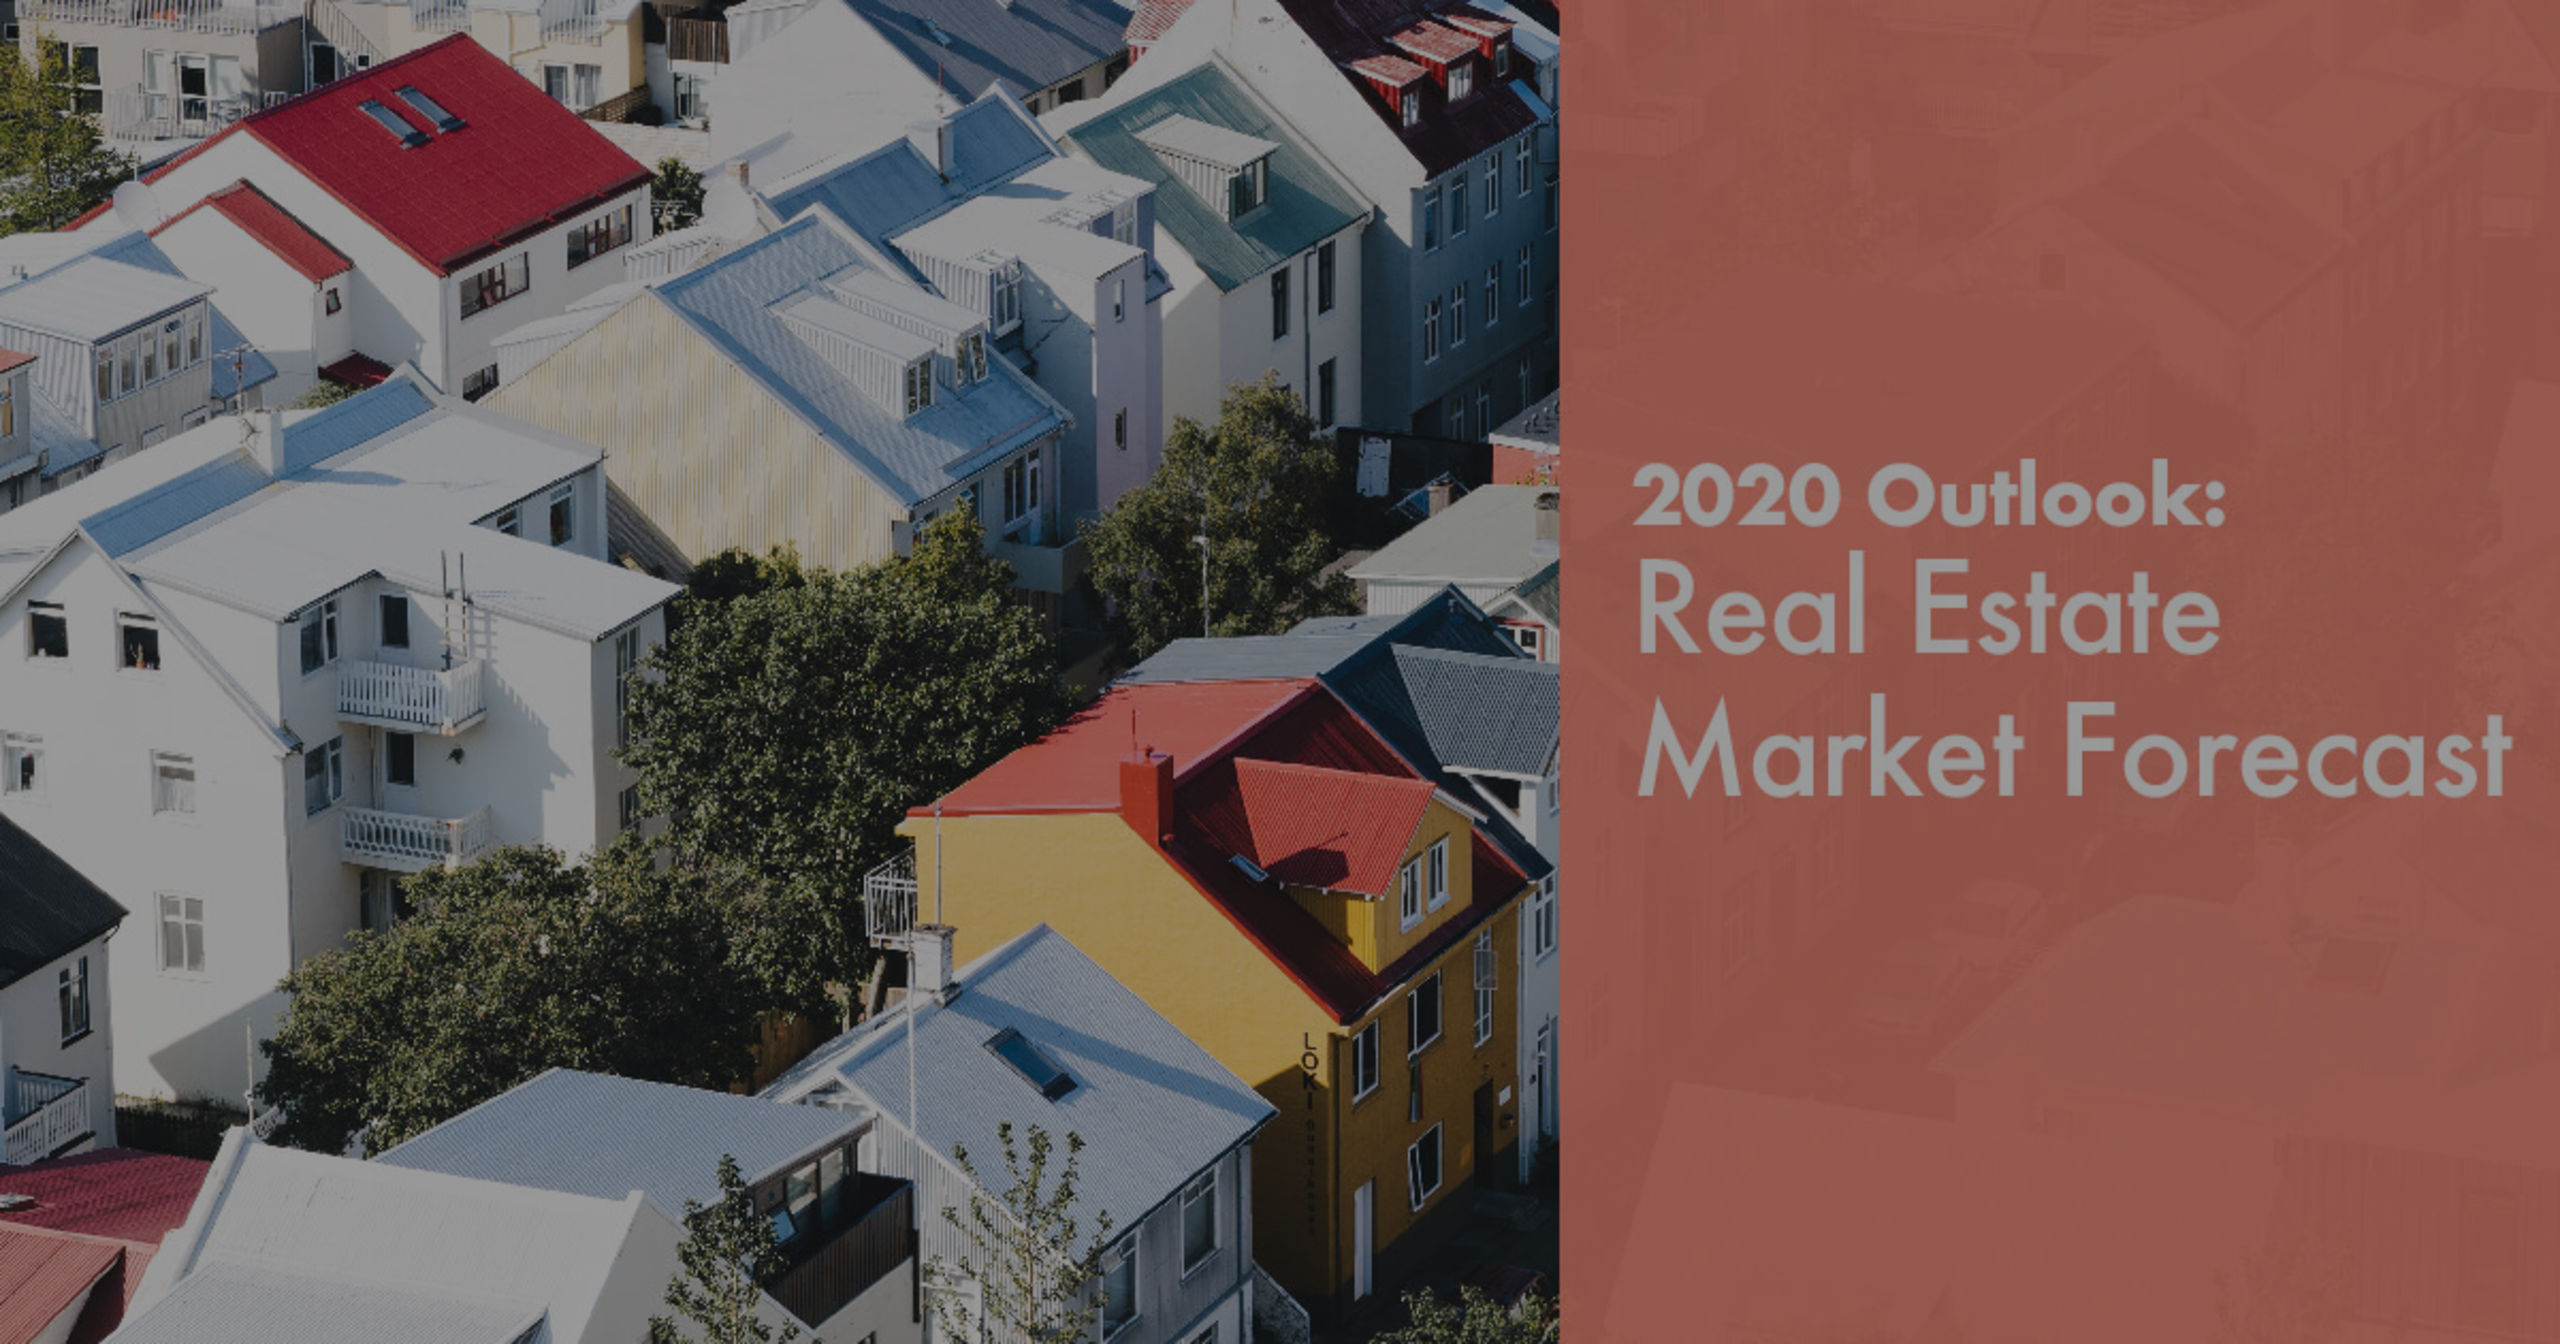 2020 Outlook: Real Estate Market Forecast